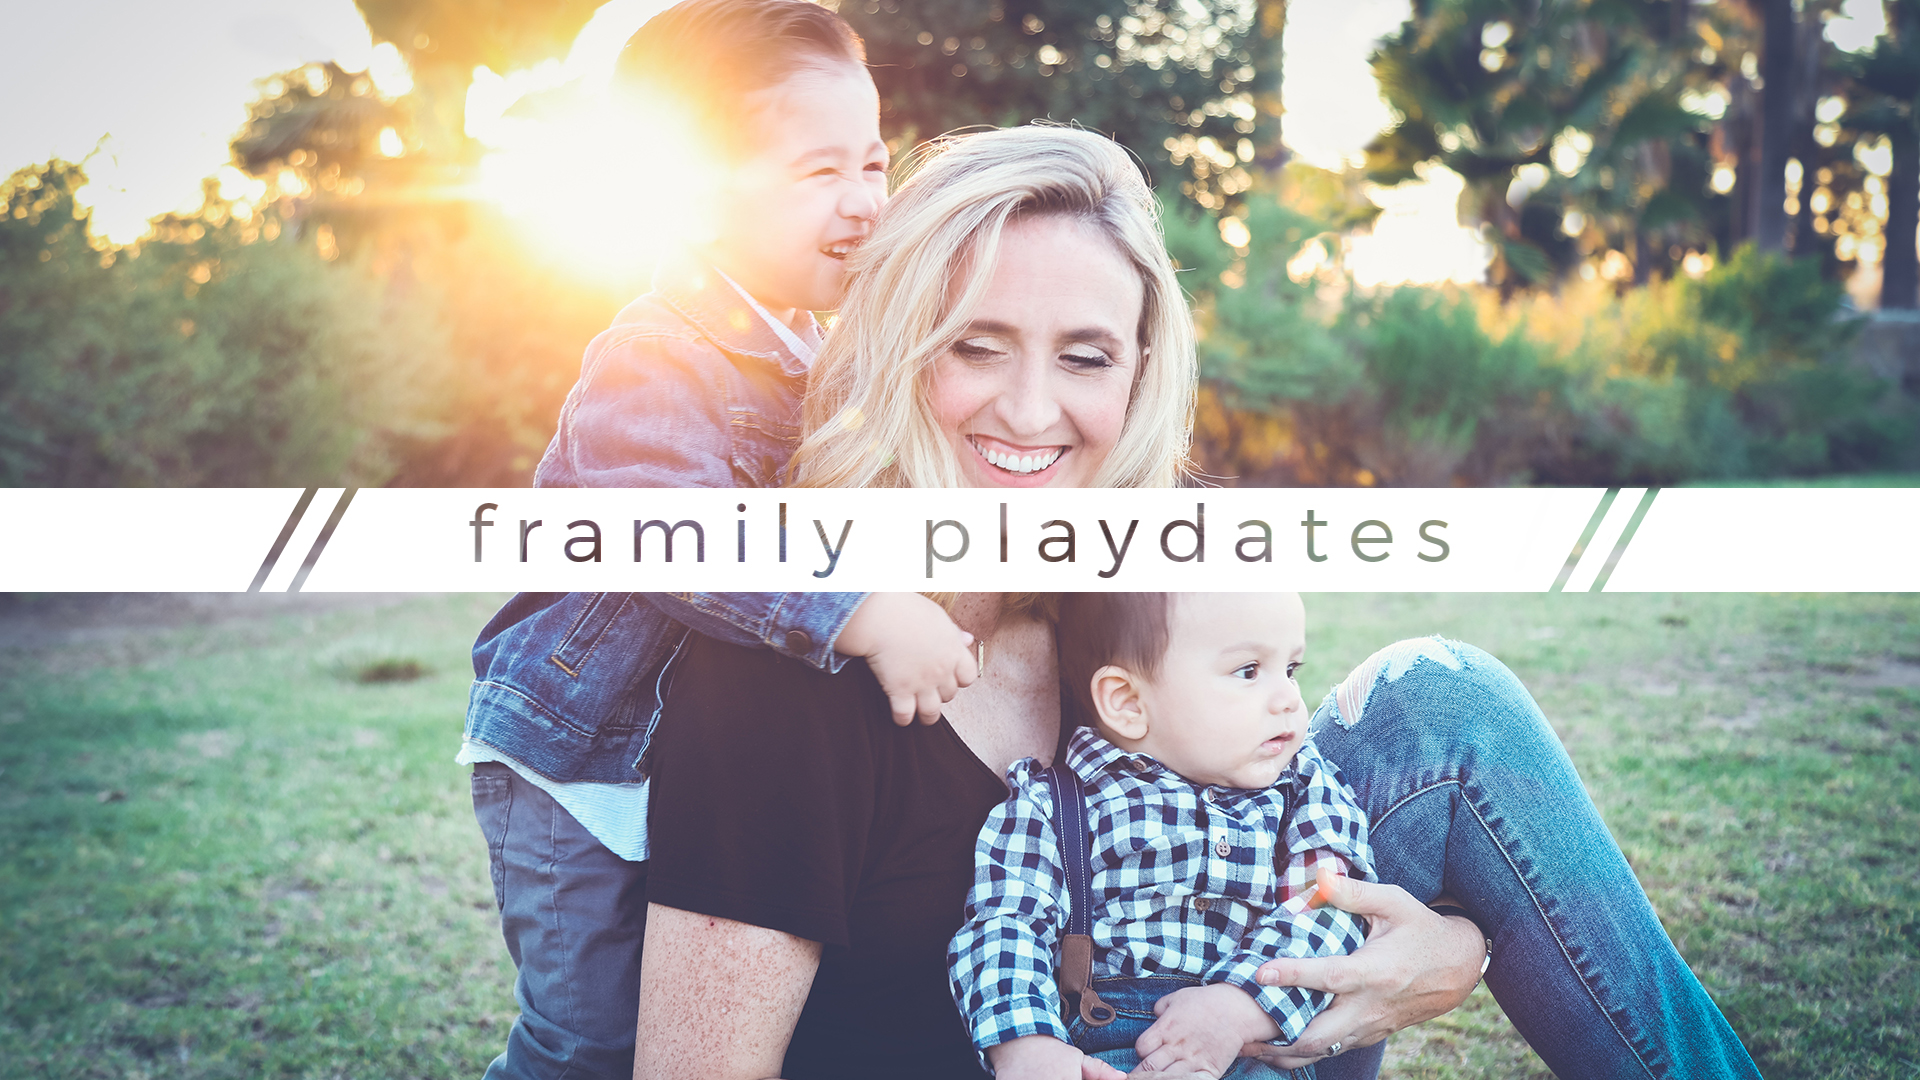 Framily Playdates.jpg